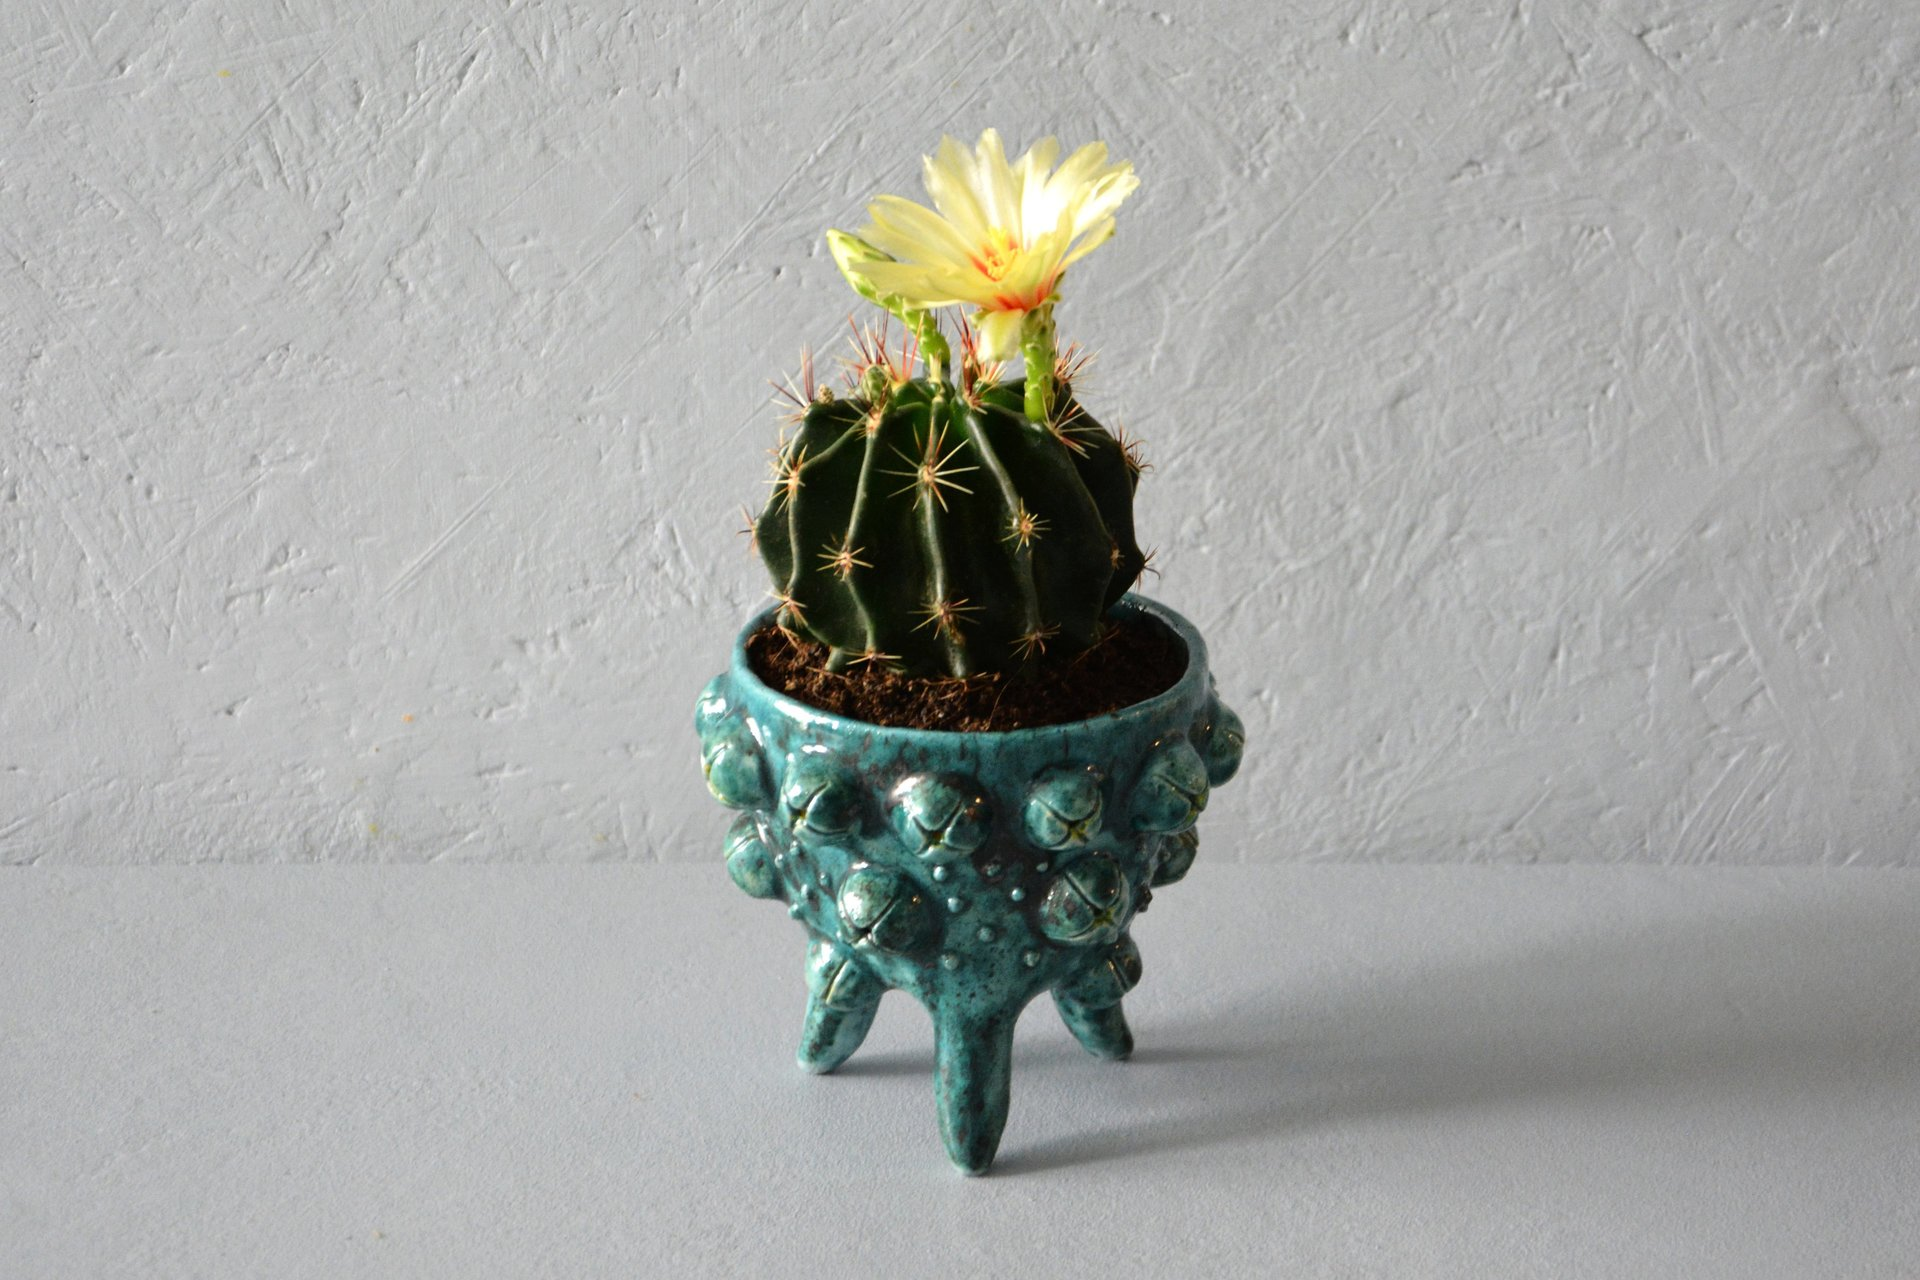 Ceramic cachepot for cactus on the legs Turquoise flicker, diameter - 10 cm, height - 9.5 cm, photo 3 of 4.